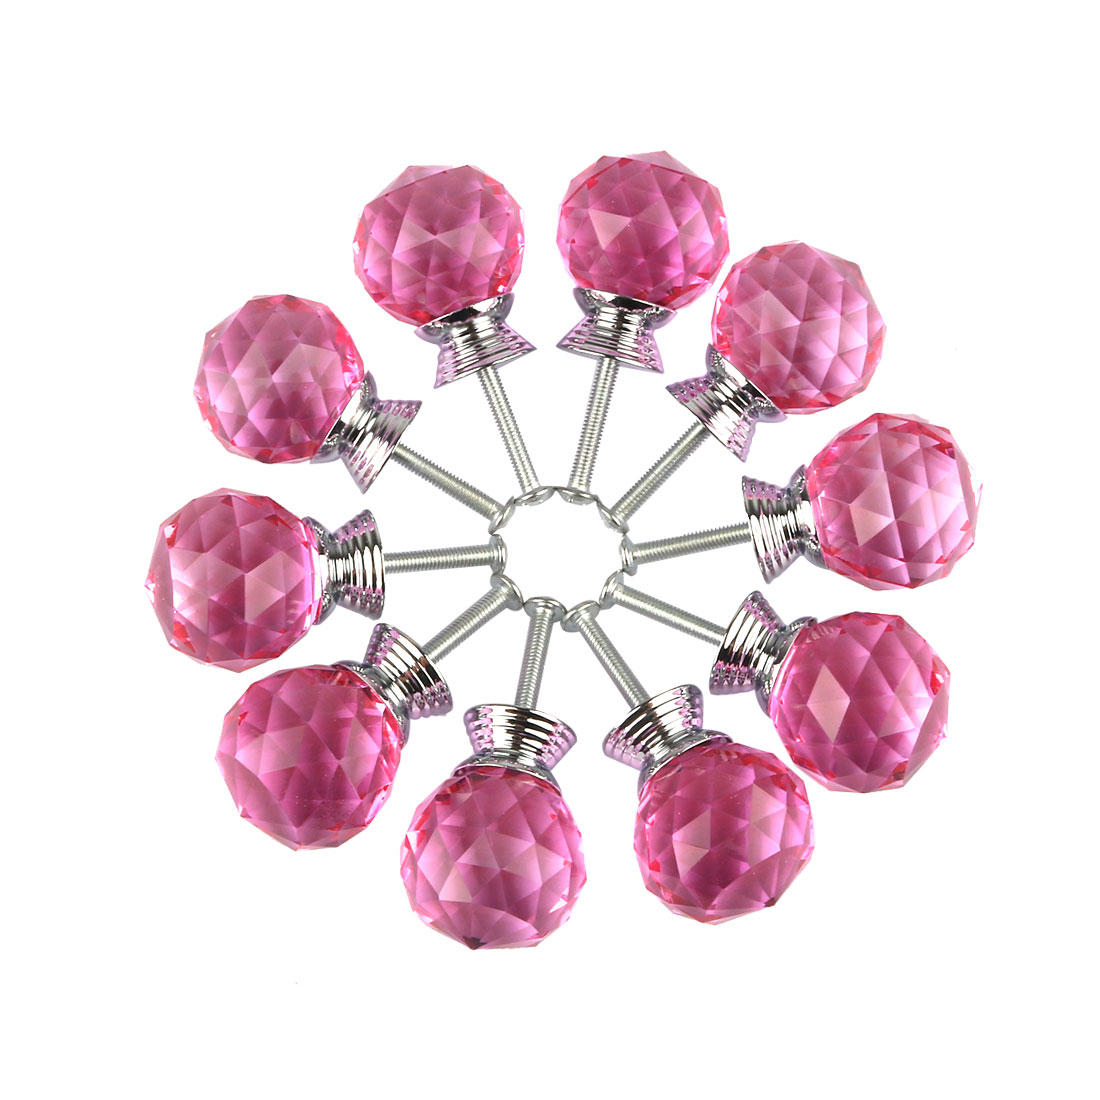 Diamond Crystal Glass Door Furniture Drawer Knobs PullHandle Cabinet 30mm Pink